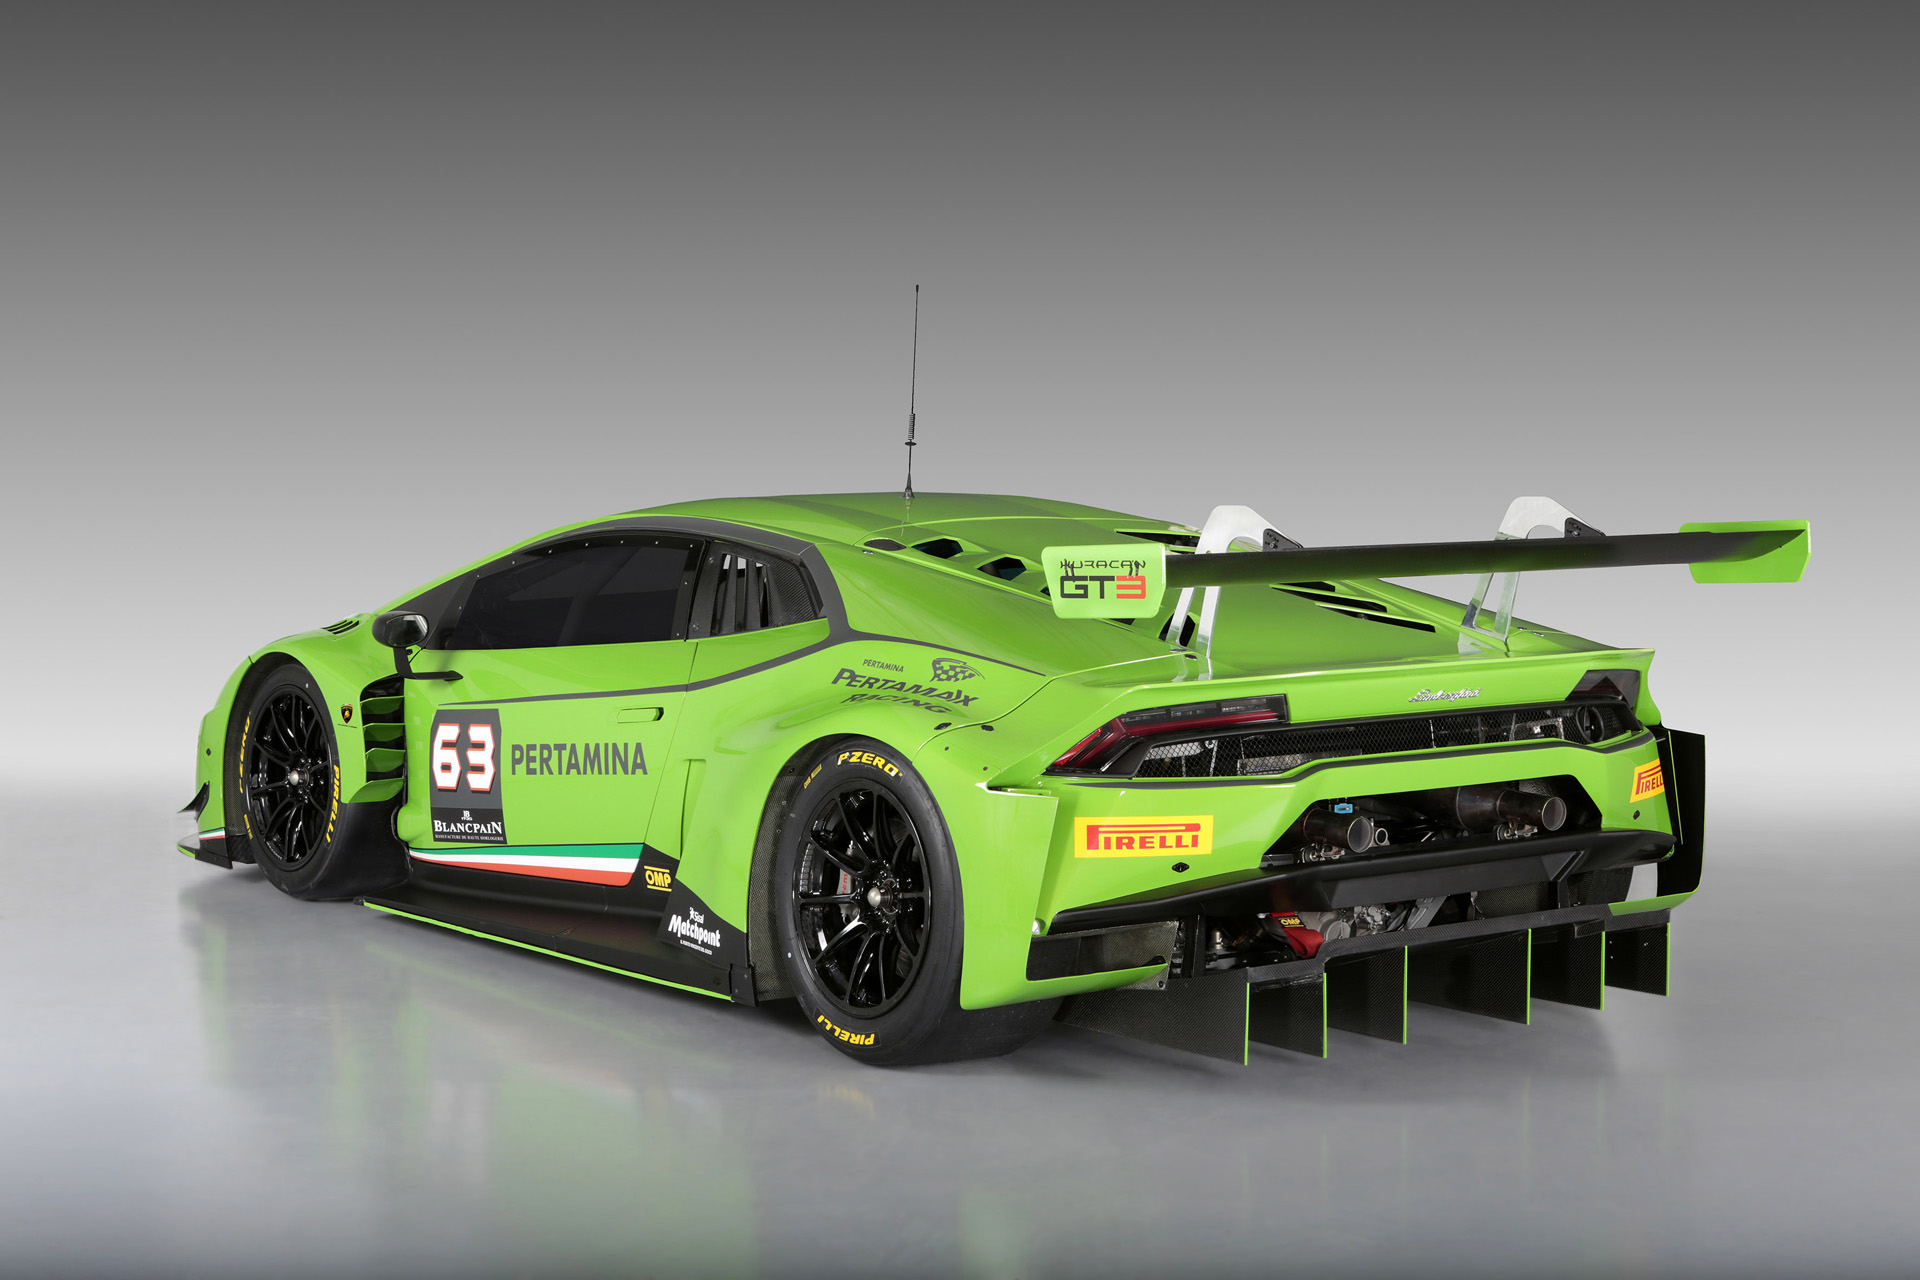 Lamborghini_Huracan_GT3_2 Fabulous Lamborghini Huracan Need for Speed 2015 Cars Trend